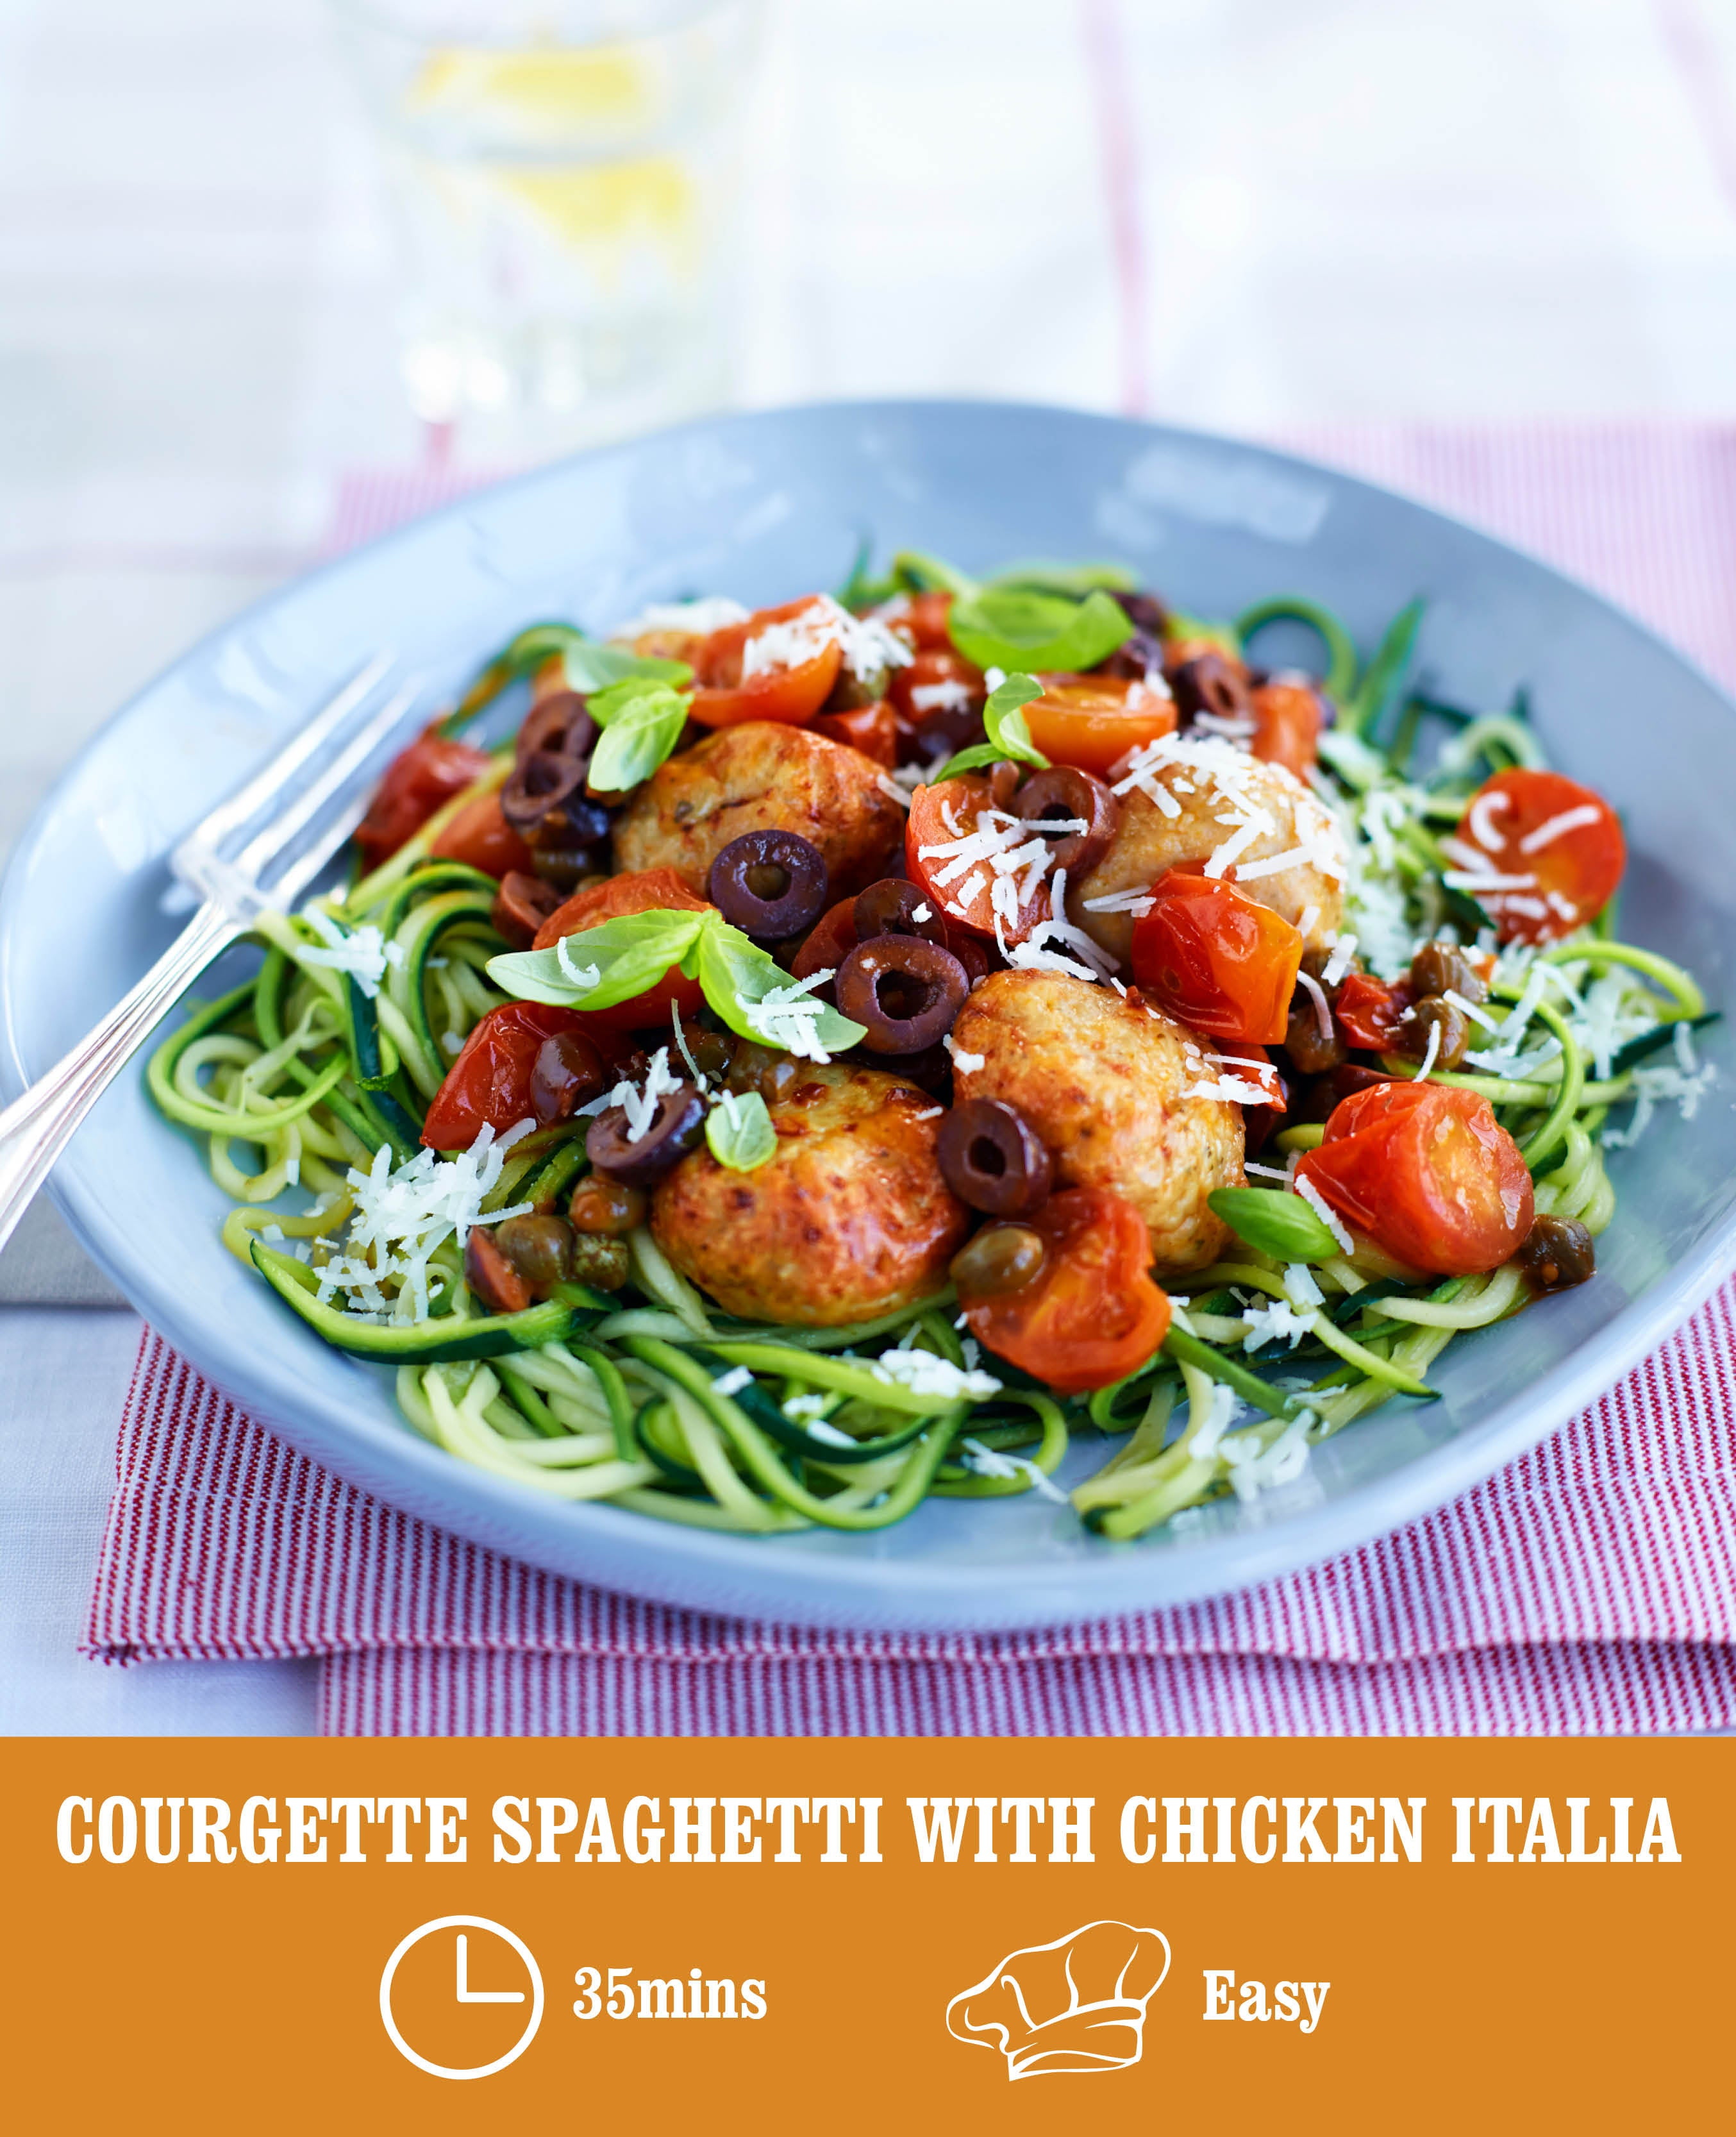 COURGETTE CHICKEN ITALIA SPAGHETTI WITH MEATBALLS